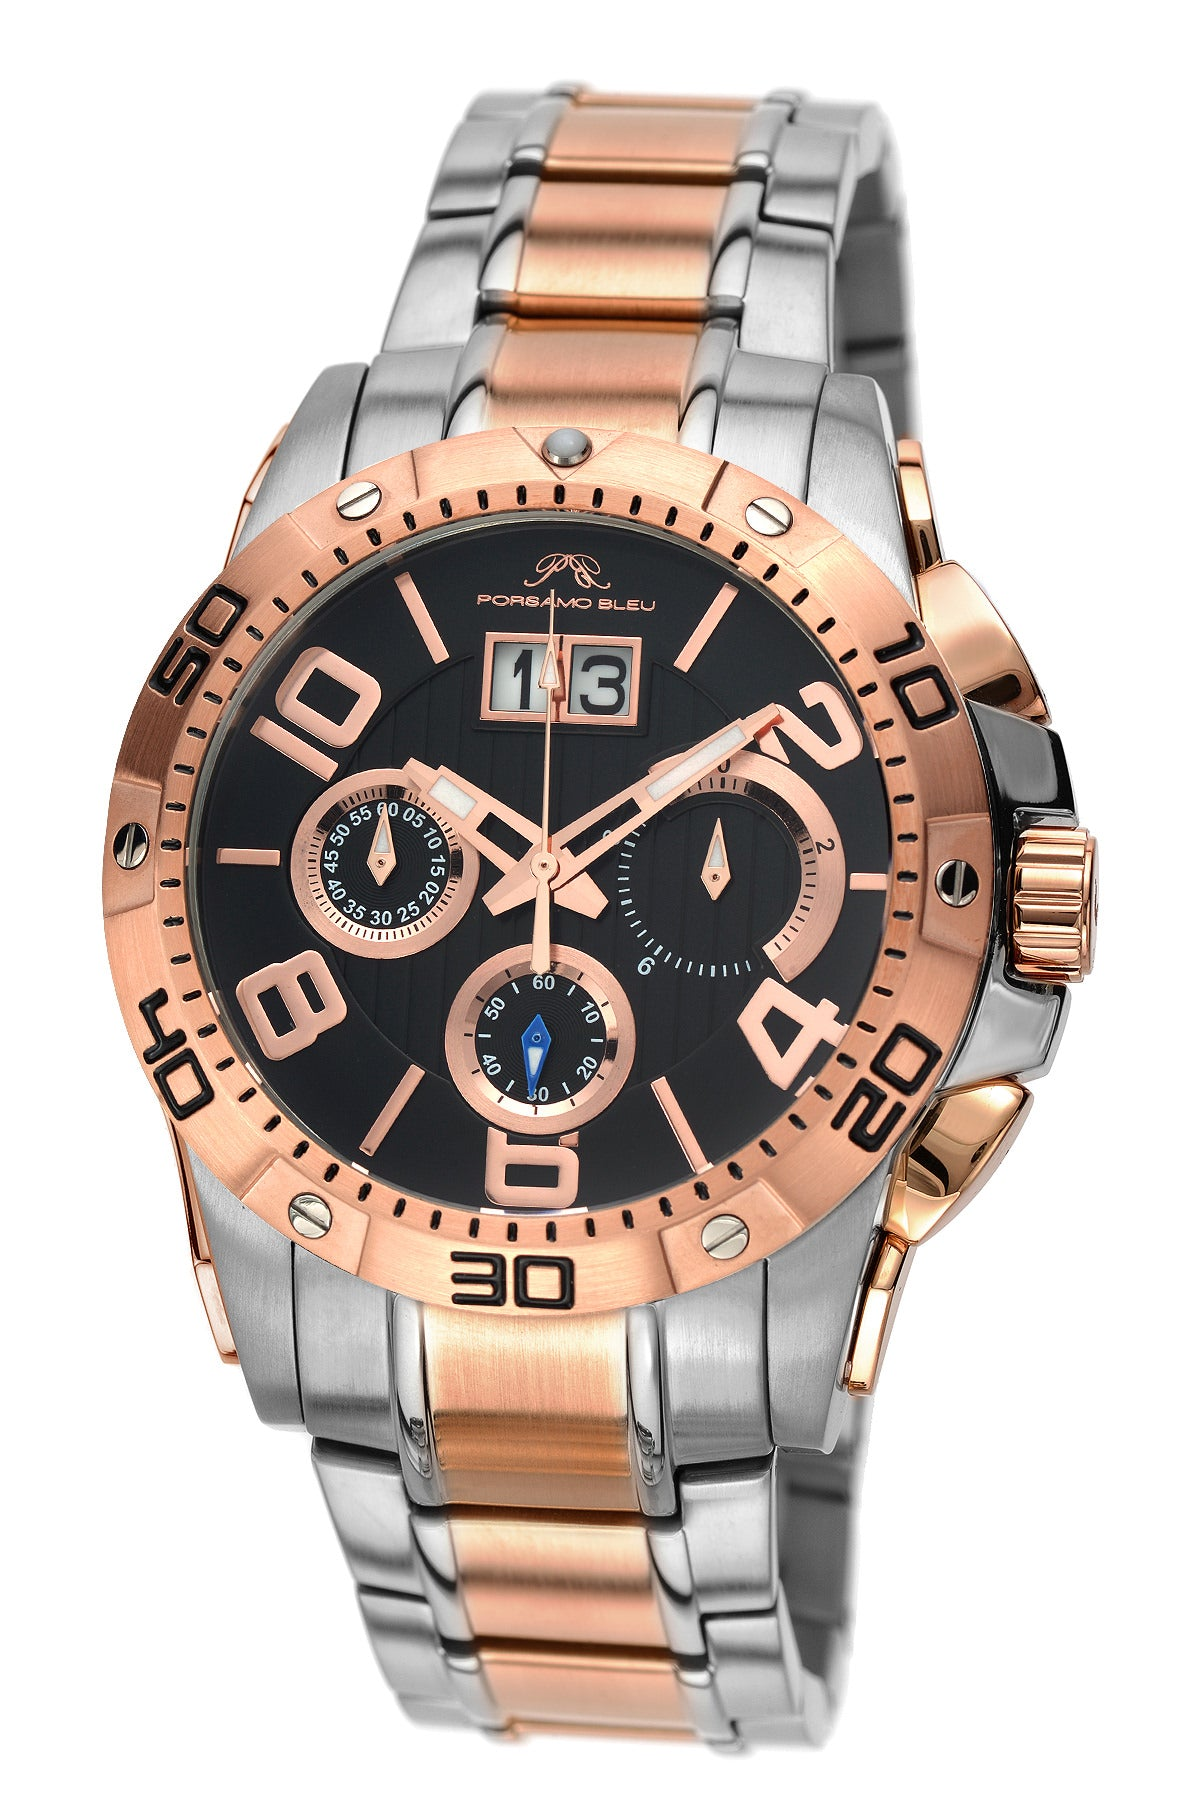 Porsamo Bleu Francoise luxury chronograph men's stainless steel watch, silver, rose, black 241AFRS